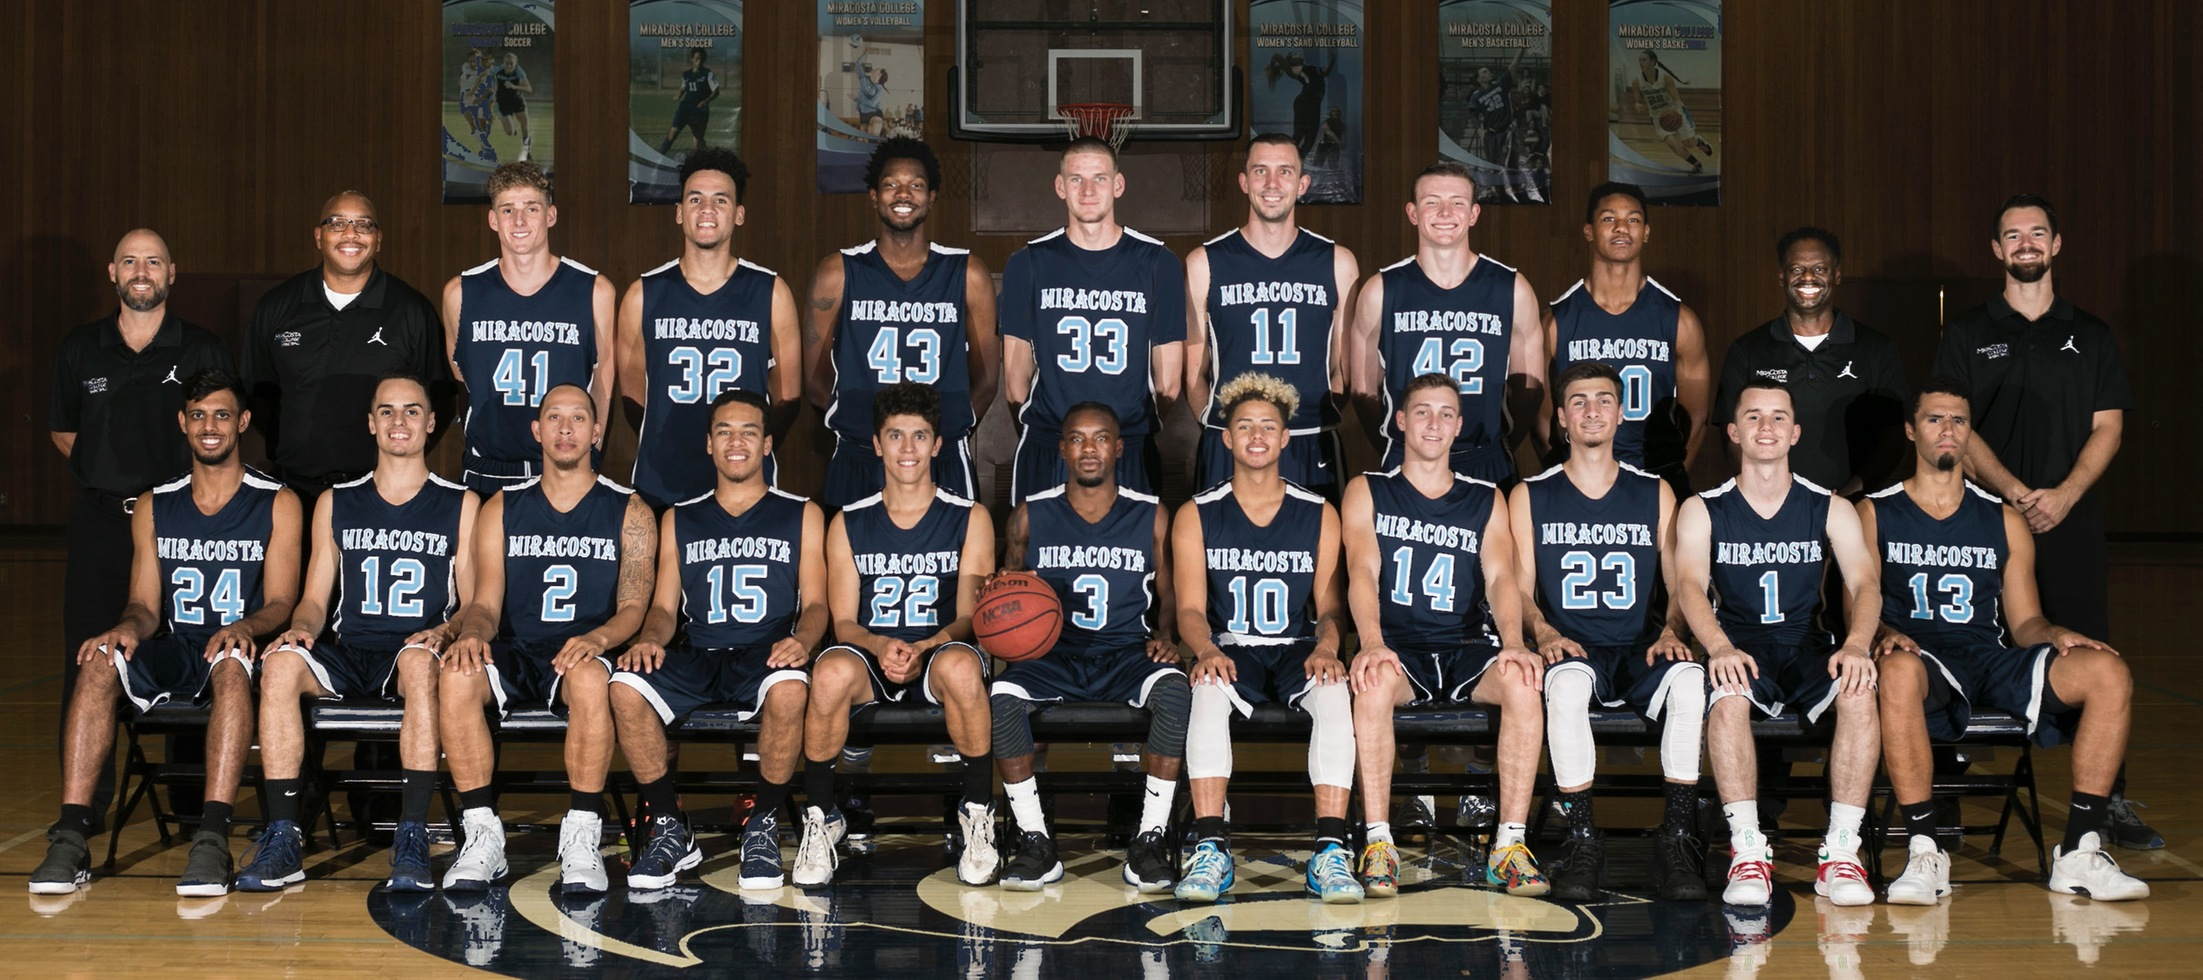 Men's basketball team picture, 2017.